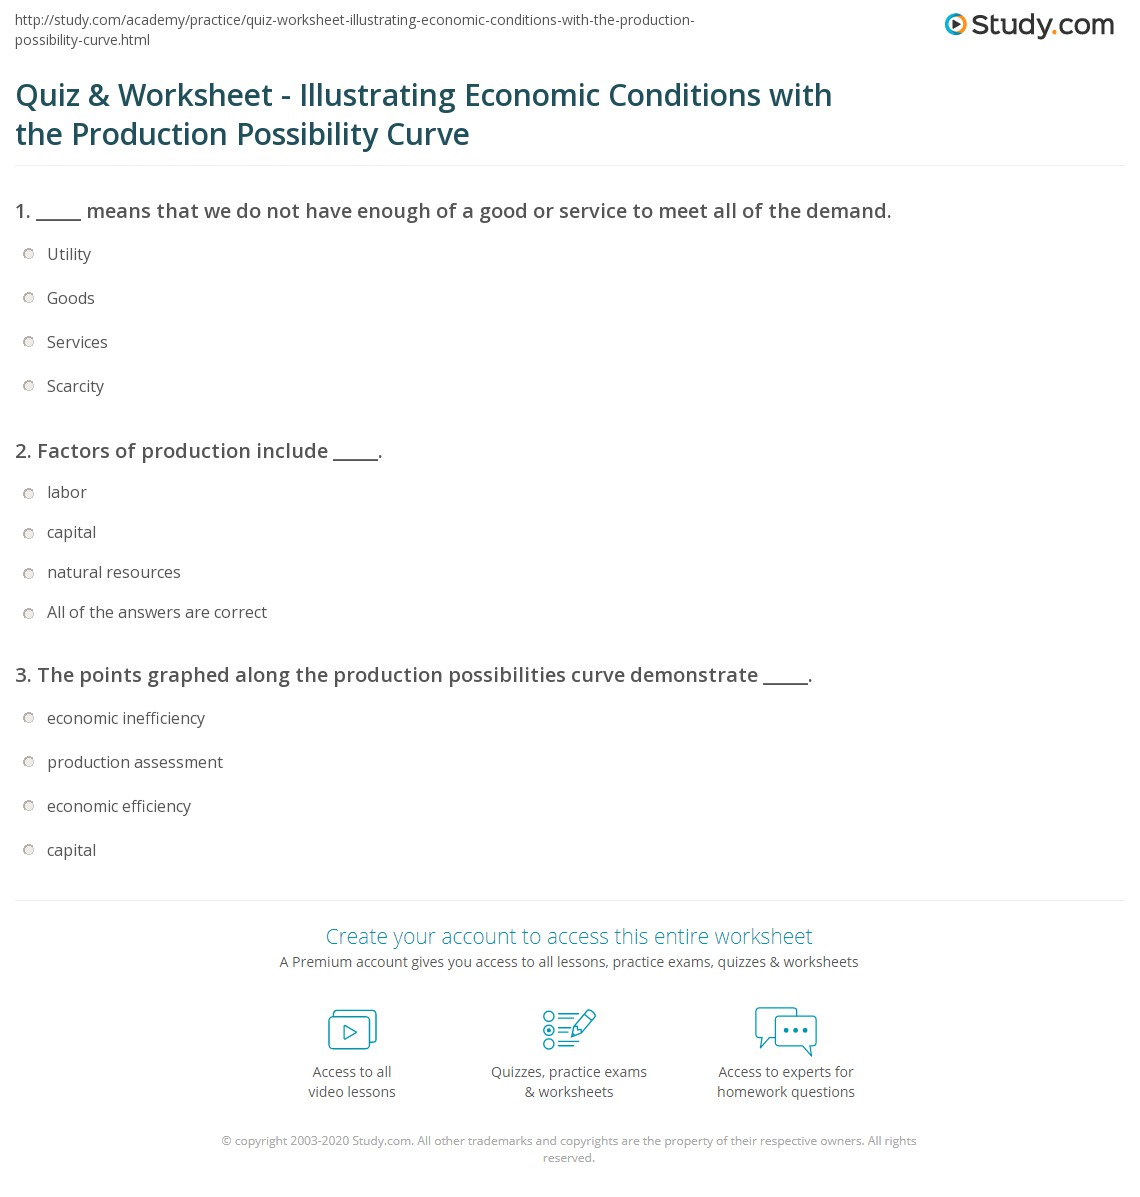 Printables Production Possibilities Curve Practice Worksheet quiz worksheet illustrating economic conditions with the print using production possibility curve to illustrate worksheet